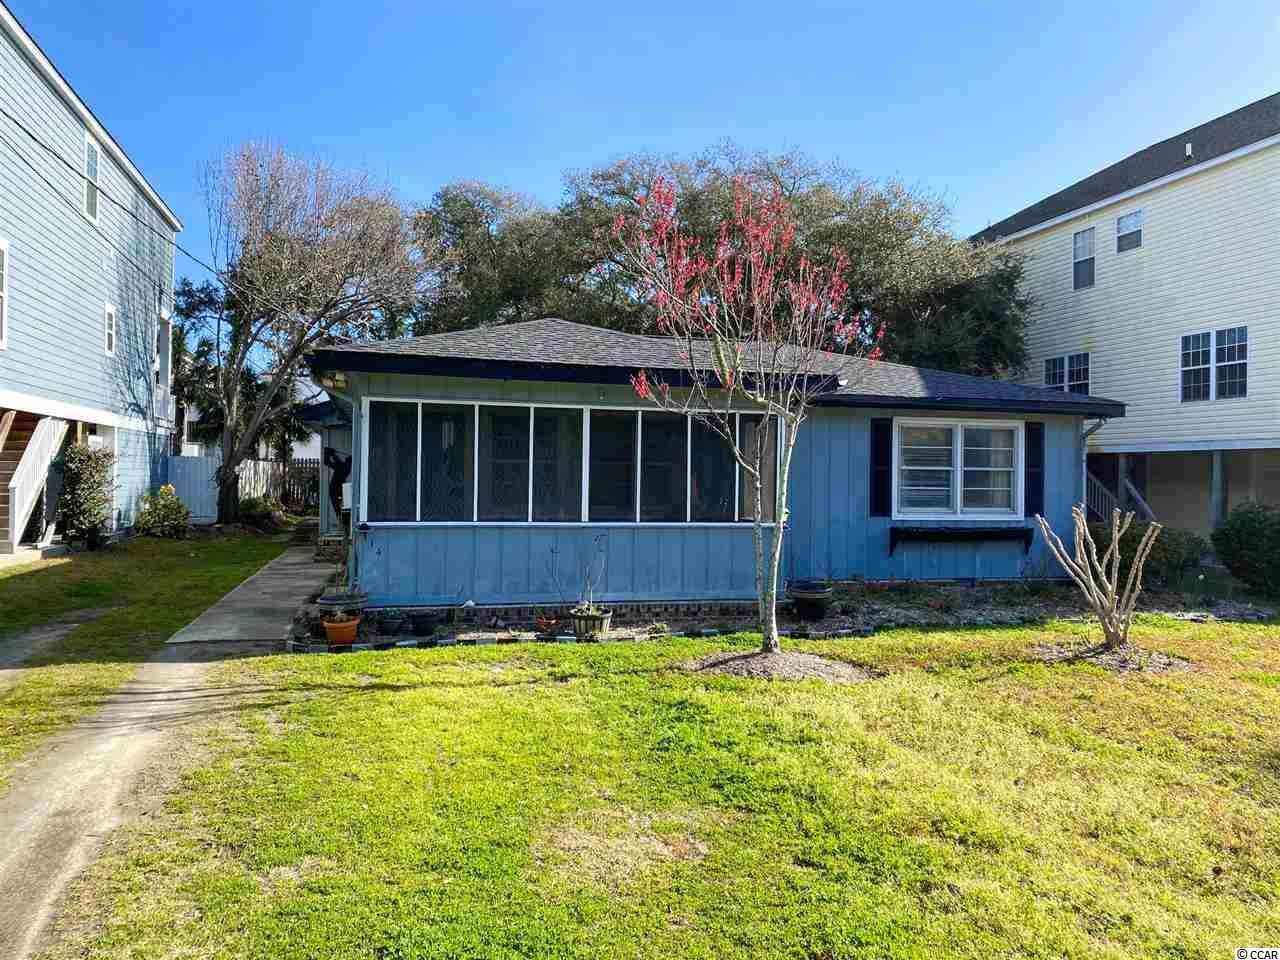 "Wonderful Location in The Town of Surfside Beach Just Steps to the Beach!  Home Needs TLC But Is A GREAT VALUE, ONLY 3 LOTS FROM THE BEACH!  The Lot Can Be Split And TWO VACATION HOMES BUILT... Or Remodel & Rent or Use...Or Build Your Dream Vacation Home!  Ask Agent For Survey For Current Lot AND Future Lots Split.  Home Is Configured As A ""Duplex"" With Two Kitchens And Separate Entrances.   Residents Of The Town Of Surfside Beach Enjoy TONS Of Community Services & Benefits Such As Free Beach Parking, Excellent Public Service From Police, Fire, Streets, Refuse Collection & Drainage Departments PLUS Many Community Events, Mosquito Spraying, Parks, Library, The Town Pier & Clean World-Class Beaches. Sq. Footage Estimated,Buyer To Verify."